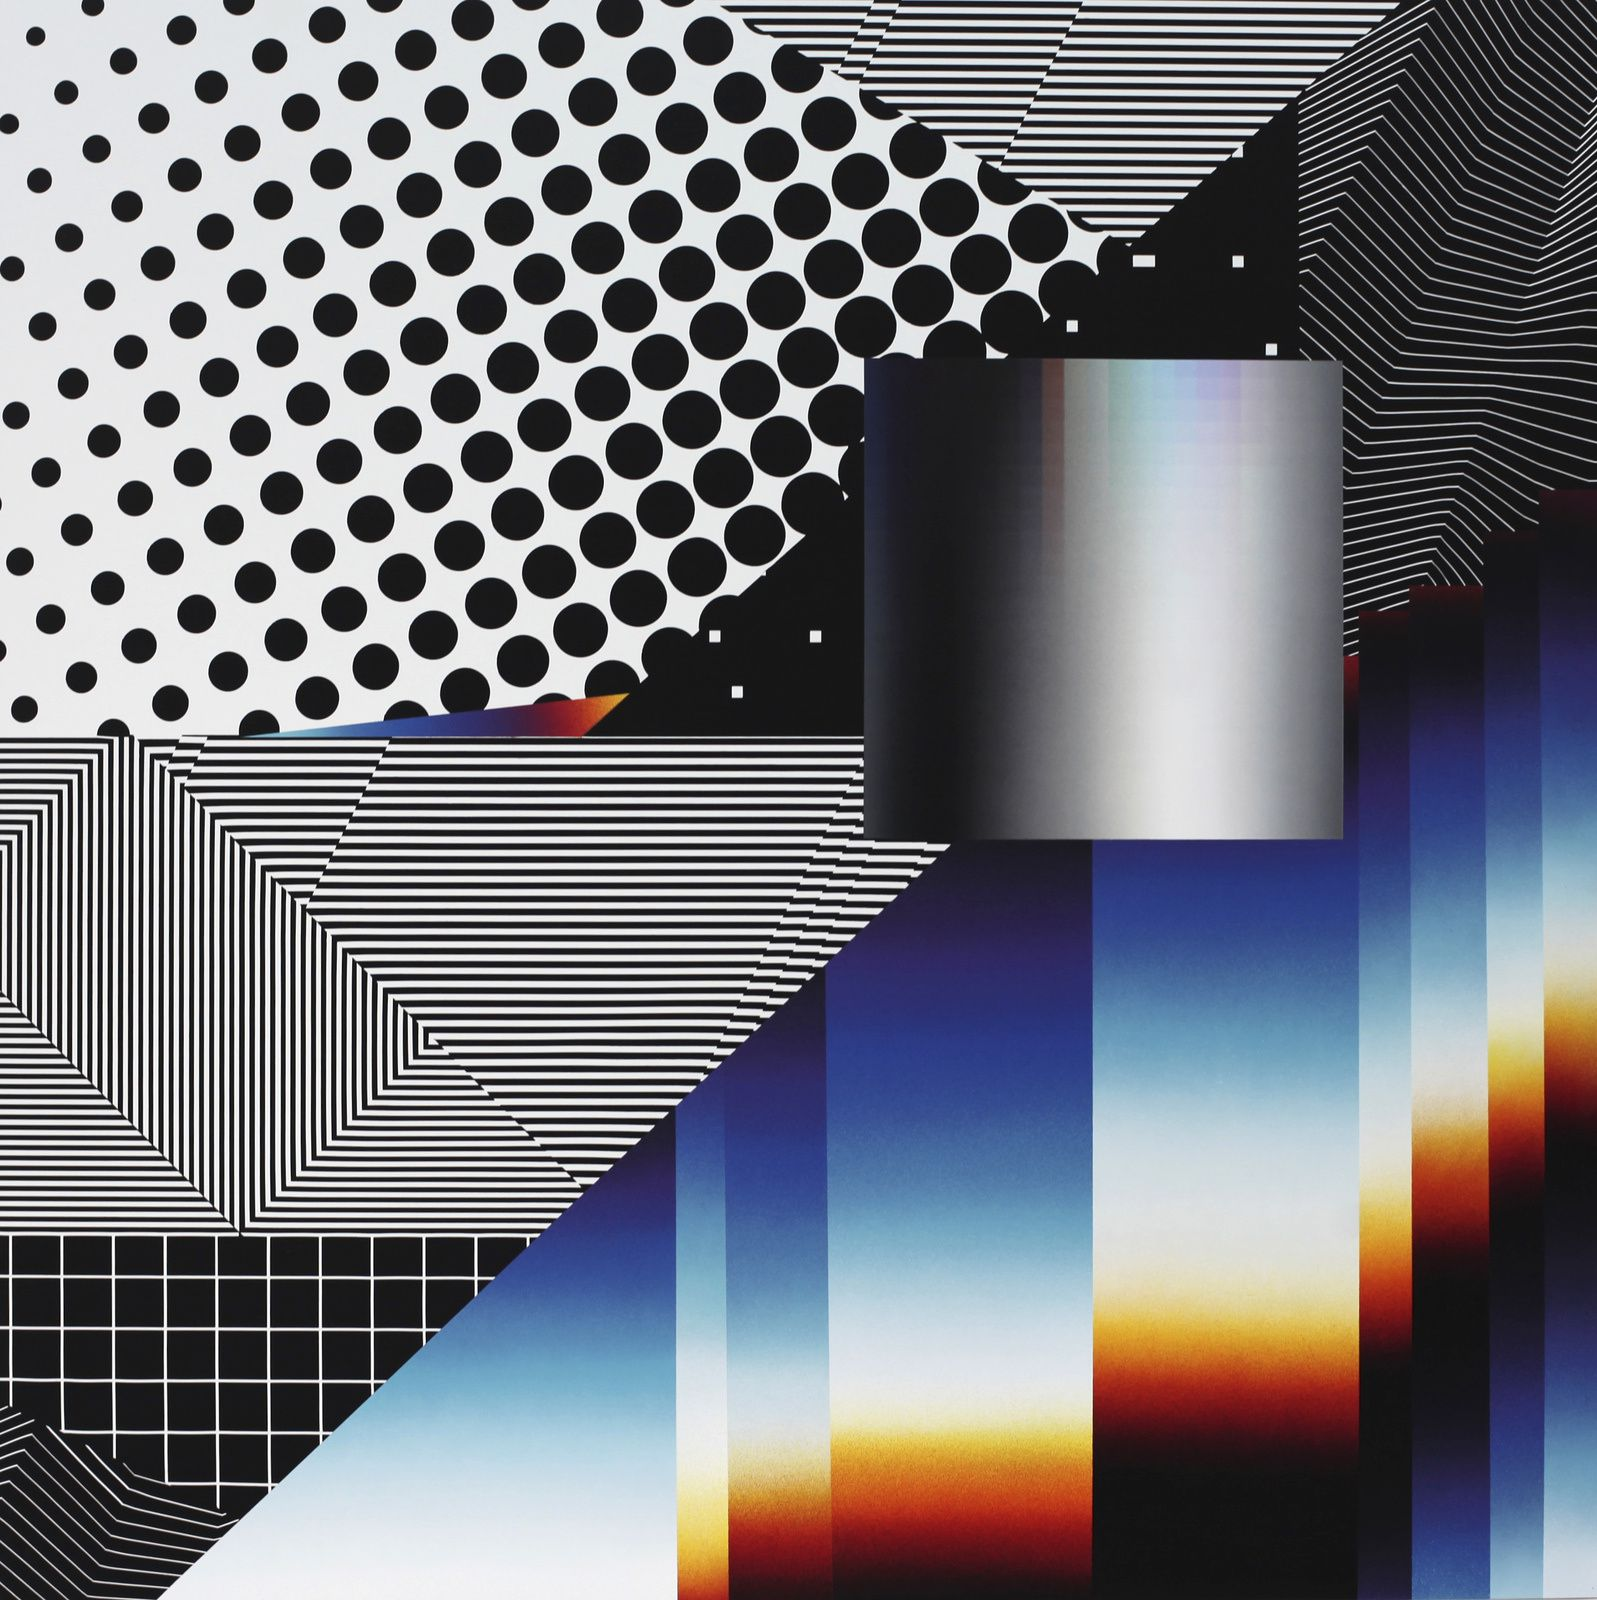 """Optichromie 99"", 2018 de Felipe PANTONE - Courtesy Galerie Magda Danysz - Paris © Photo Éric Simon"